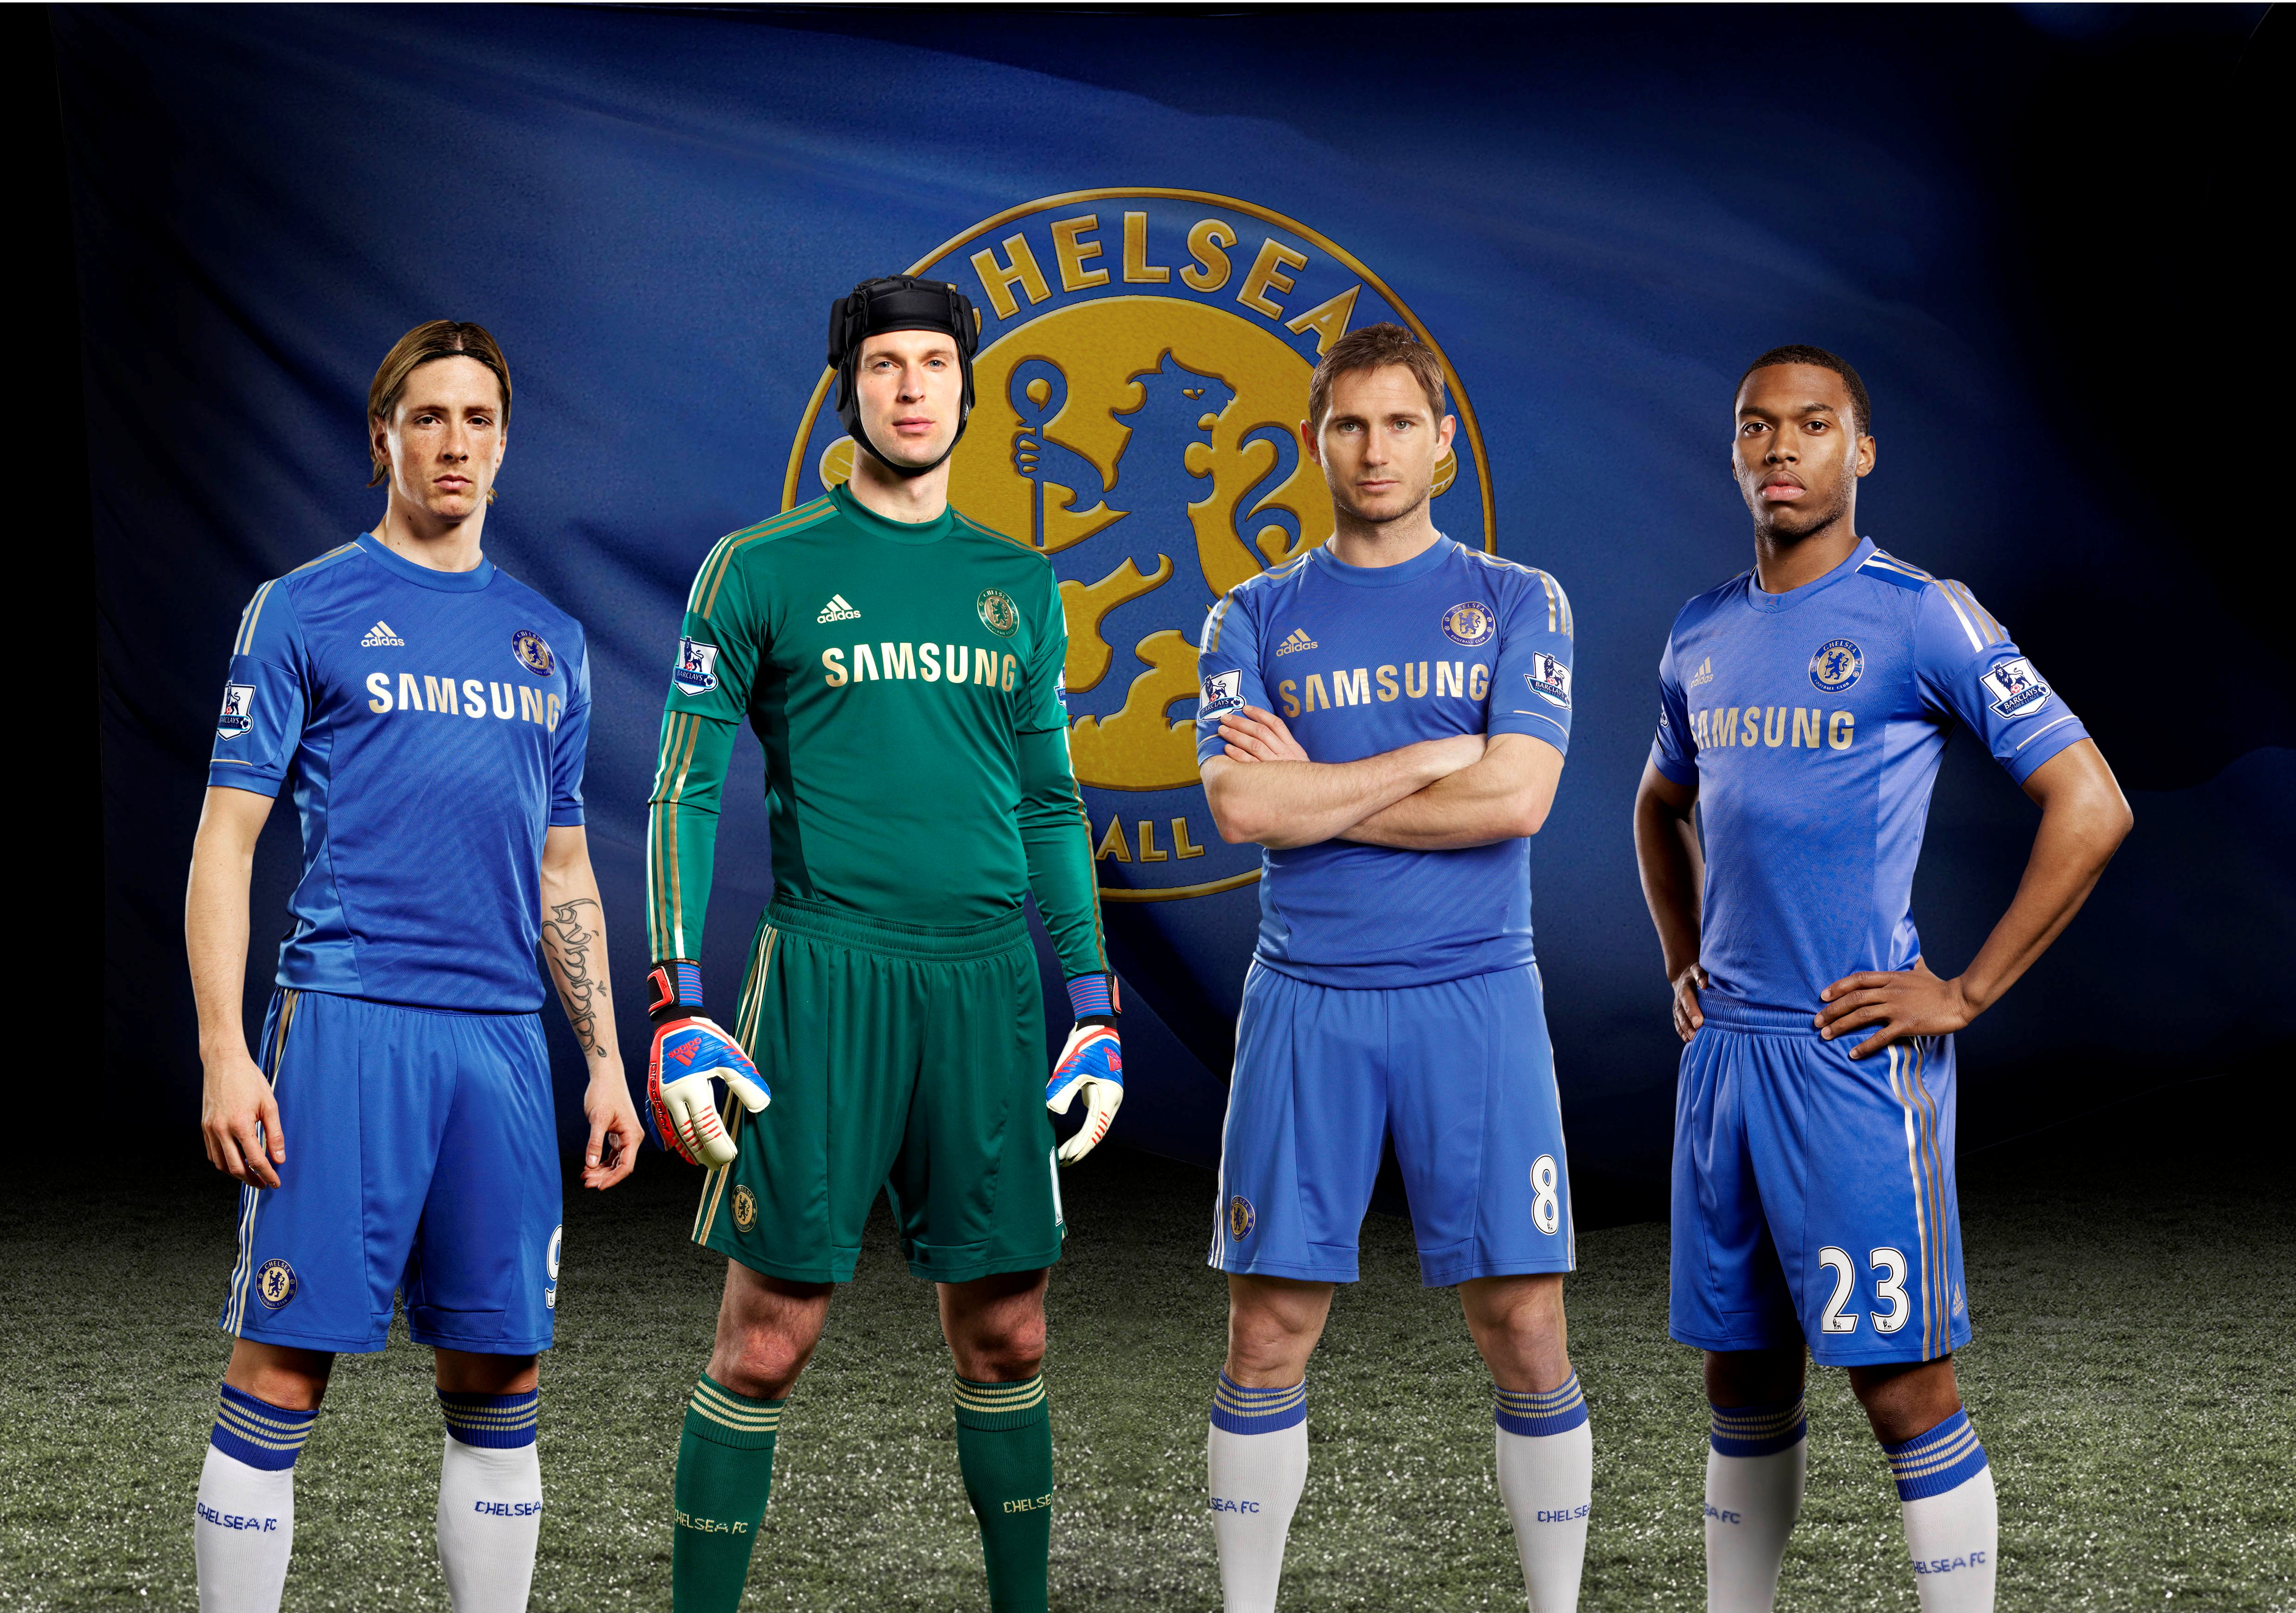 d1ed04a8433 The New 2012/2013 Chelsea Home Shirt | Sportslens